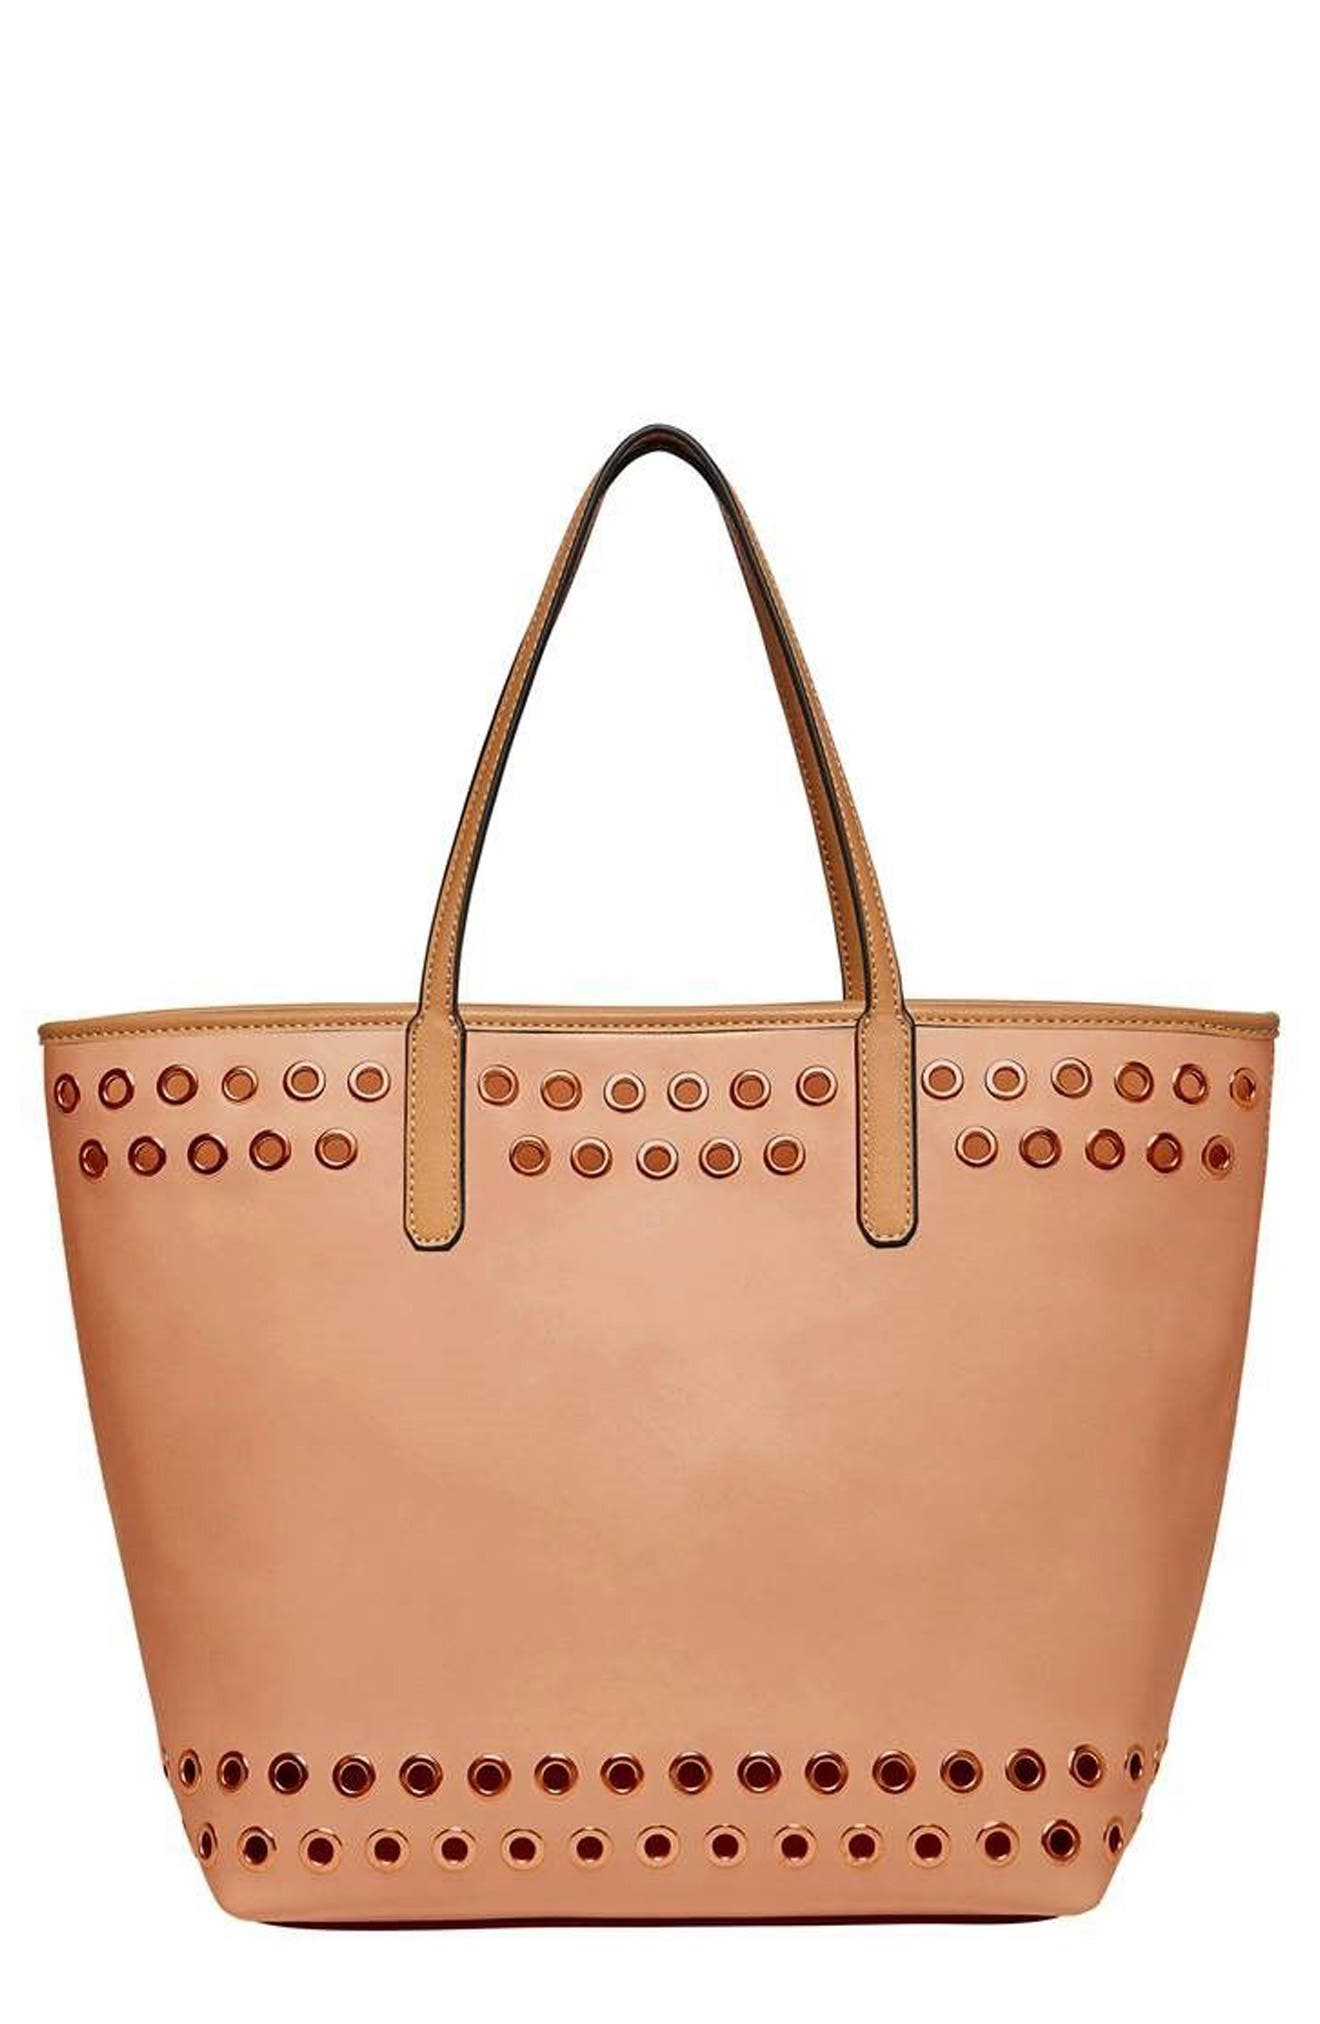 Alternate Image 1 Selected - Urban Originals Wonderland Vegan Leather Tote & Shoulder Bag